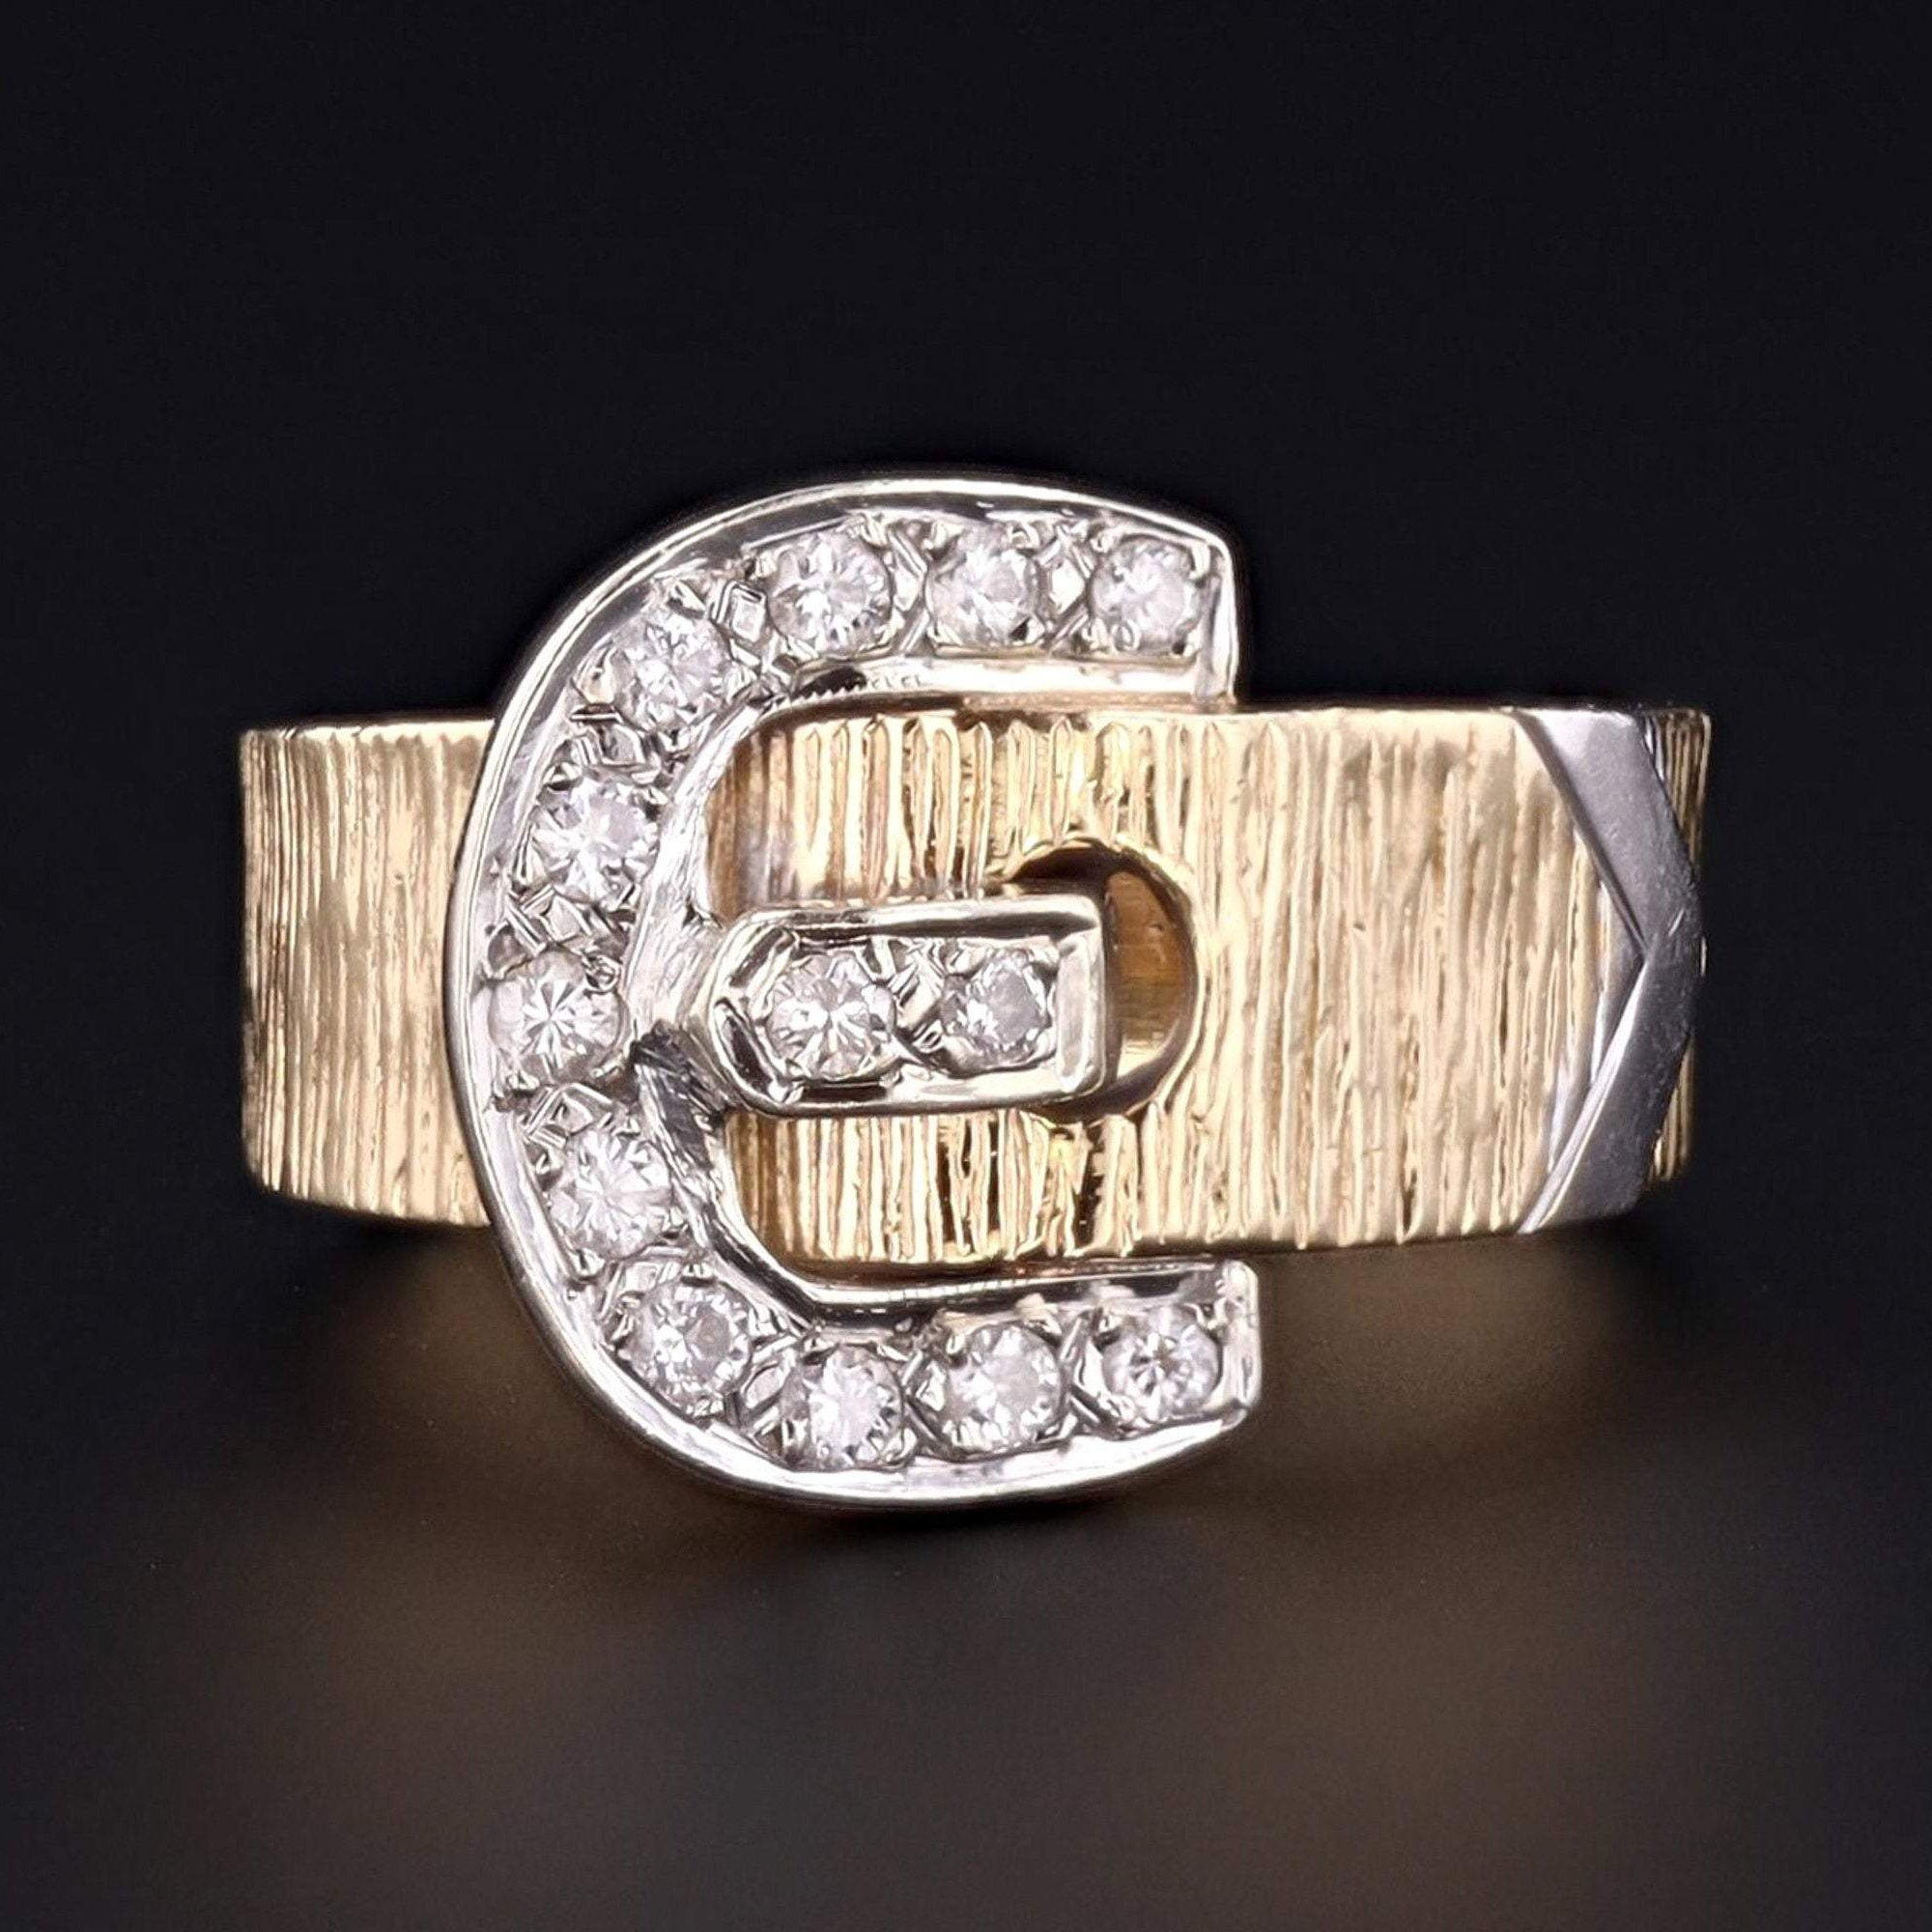 Vintage Buckle Ring | 14k Gold Buckle Ring | 14k Gold & Diamond Buckle Ring